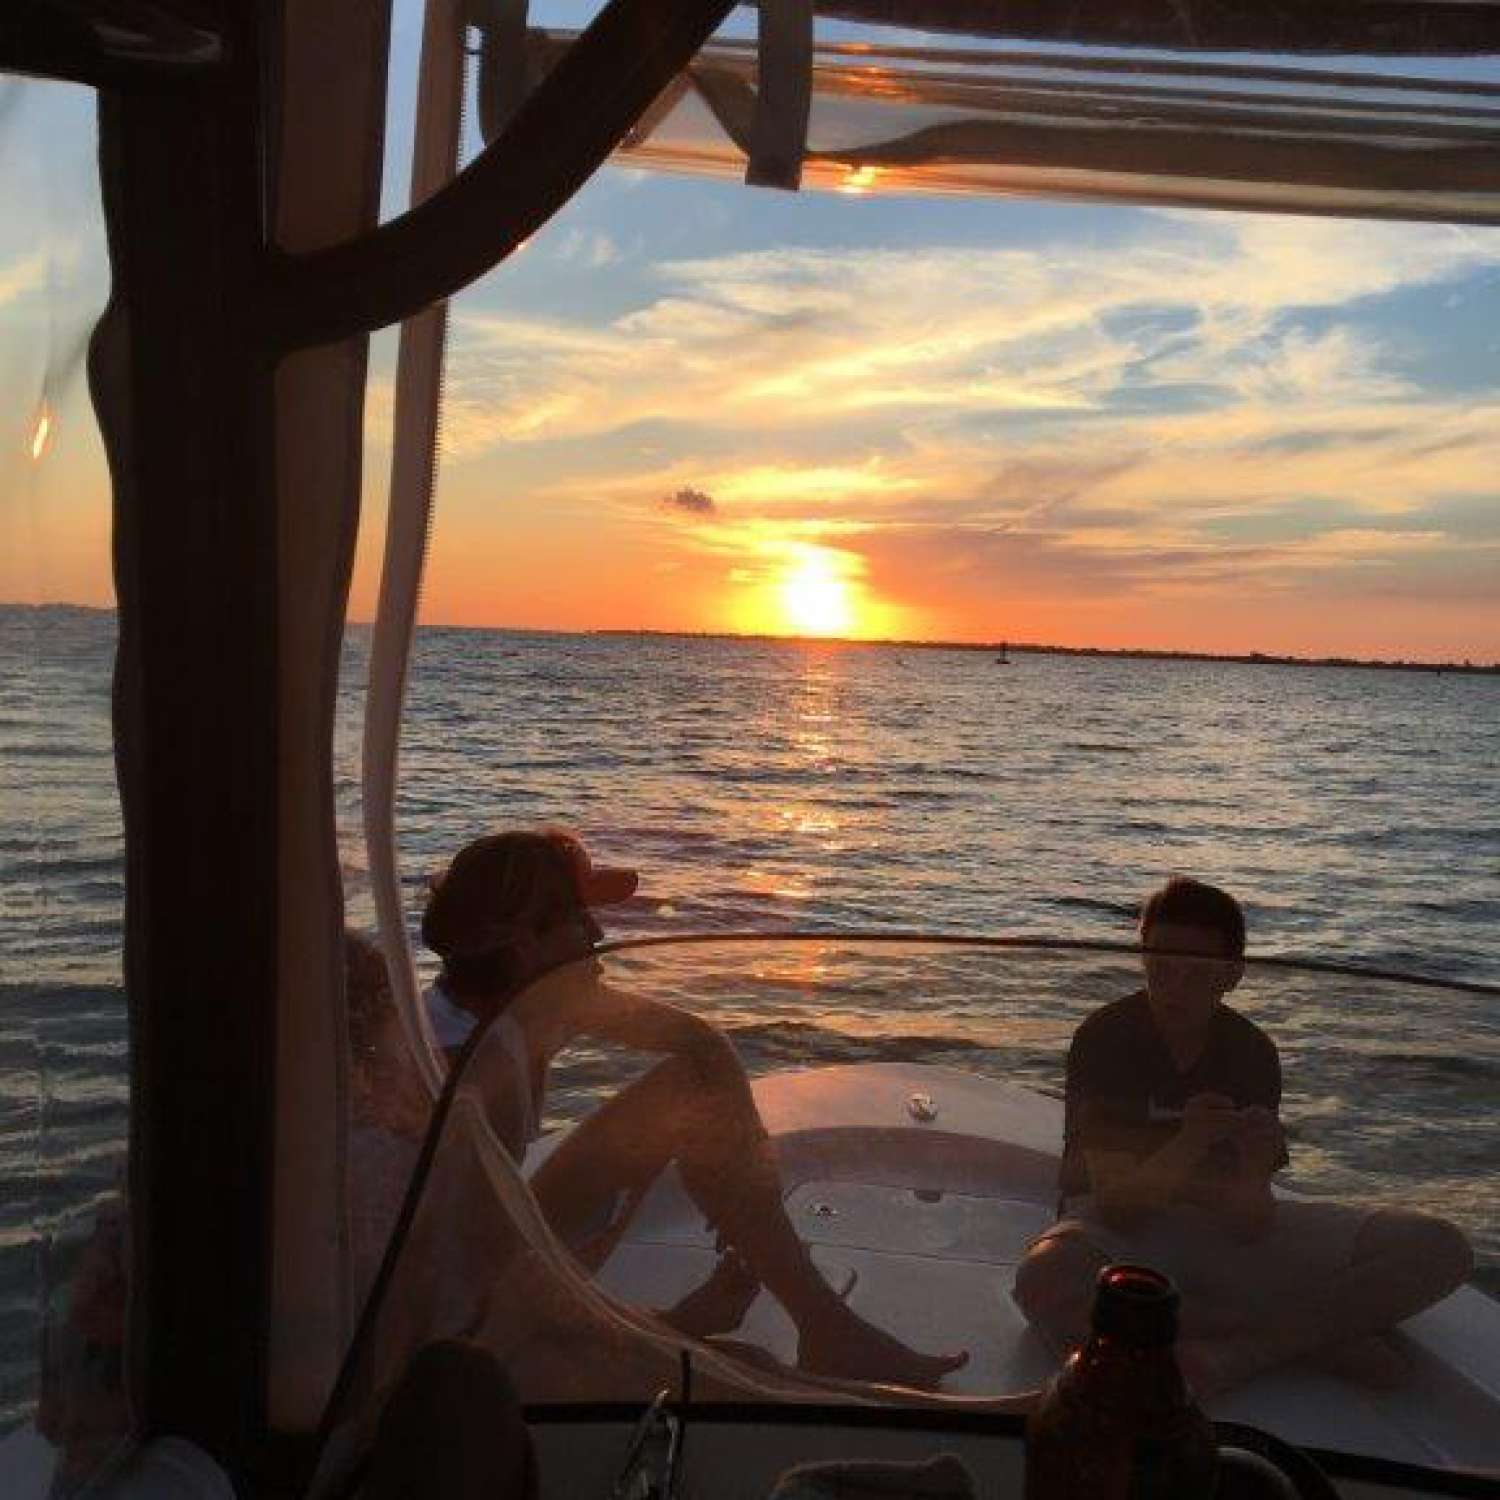 Title: Tampa Bay Sunset - On board their Sportsman Masters 227 Bay Boat - Location: Valrico, Florida. Participating in the Photo Contest #SportsmanJune2016